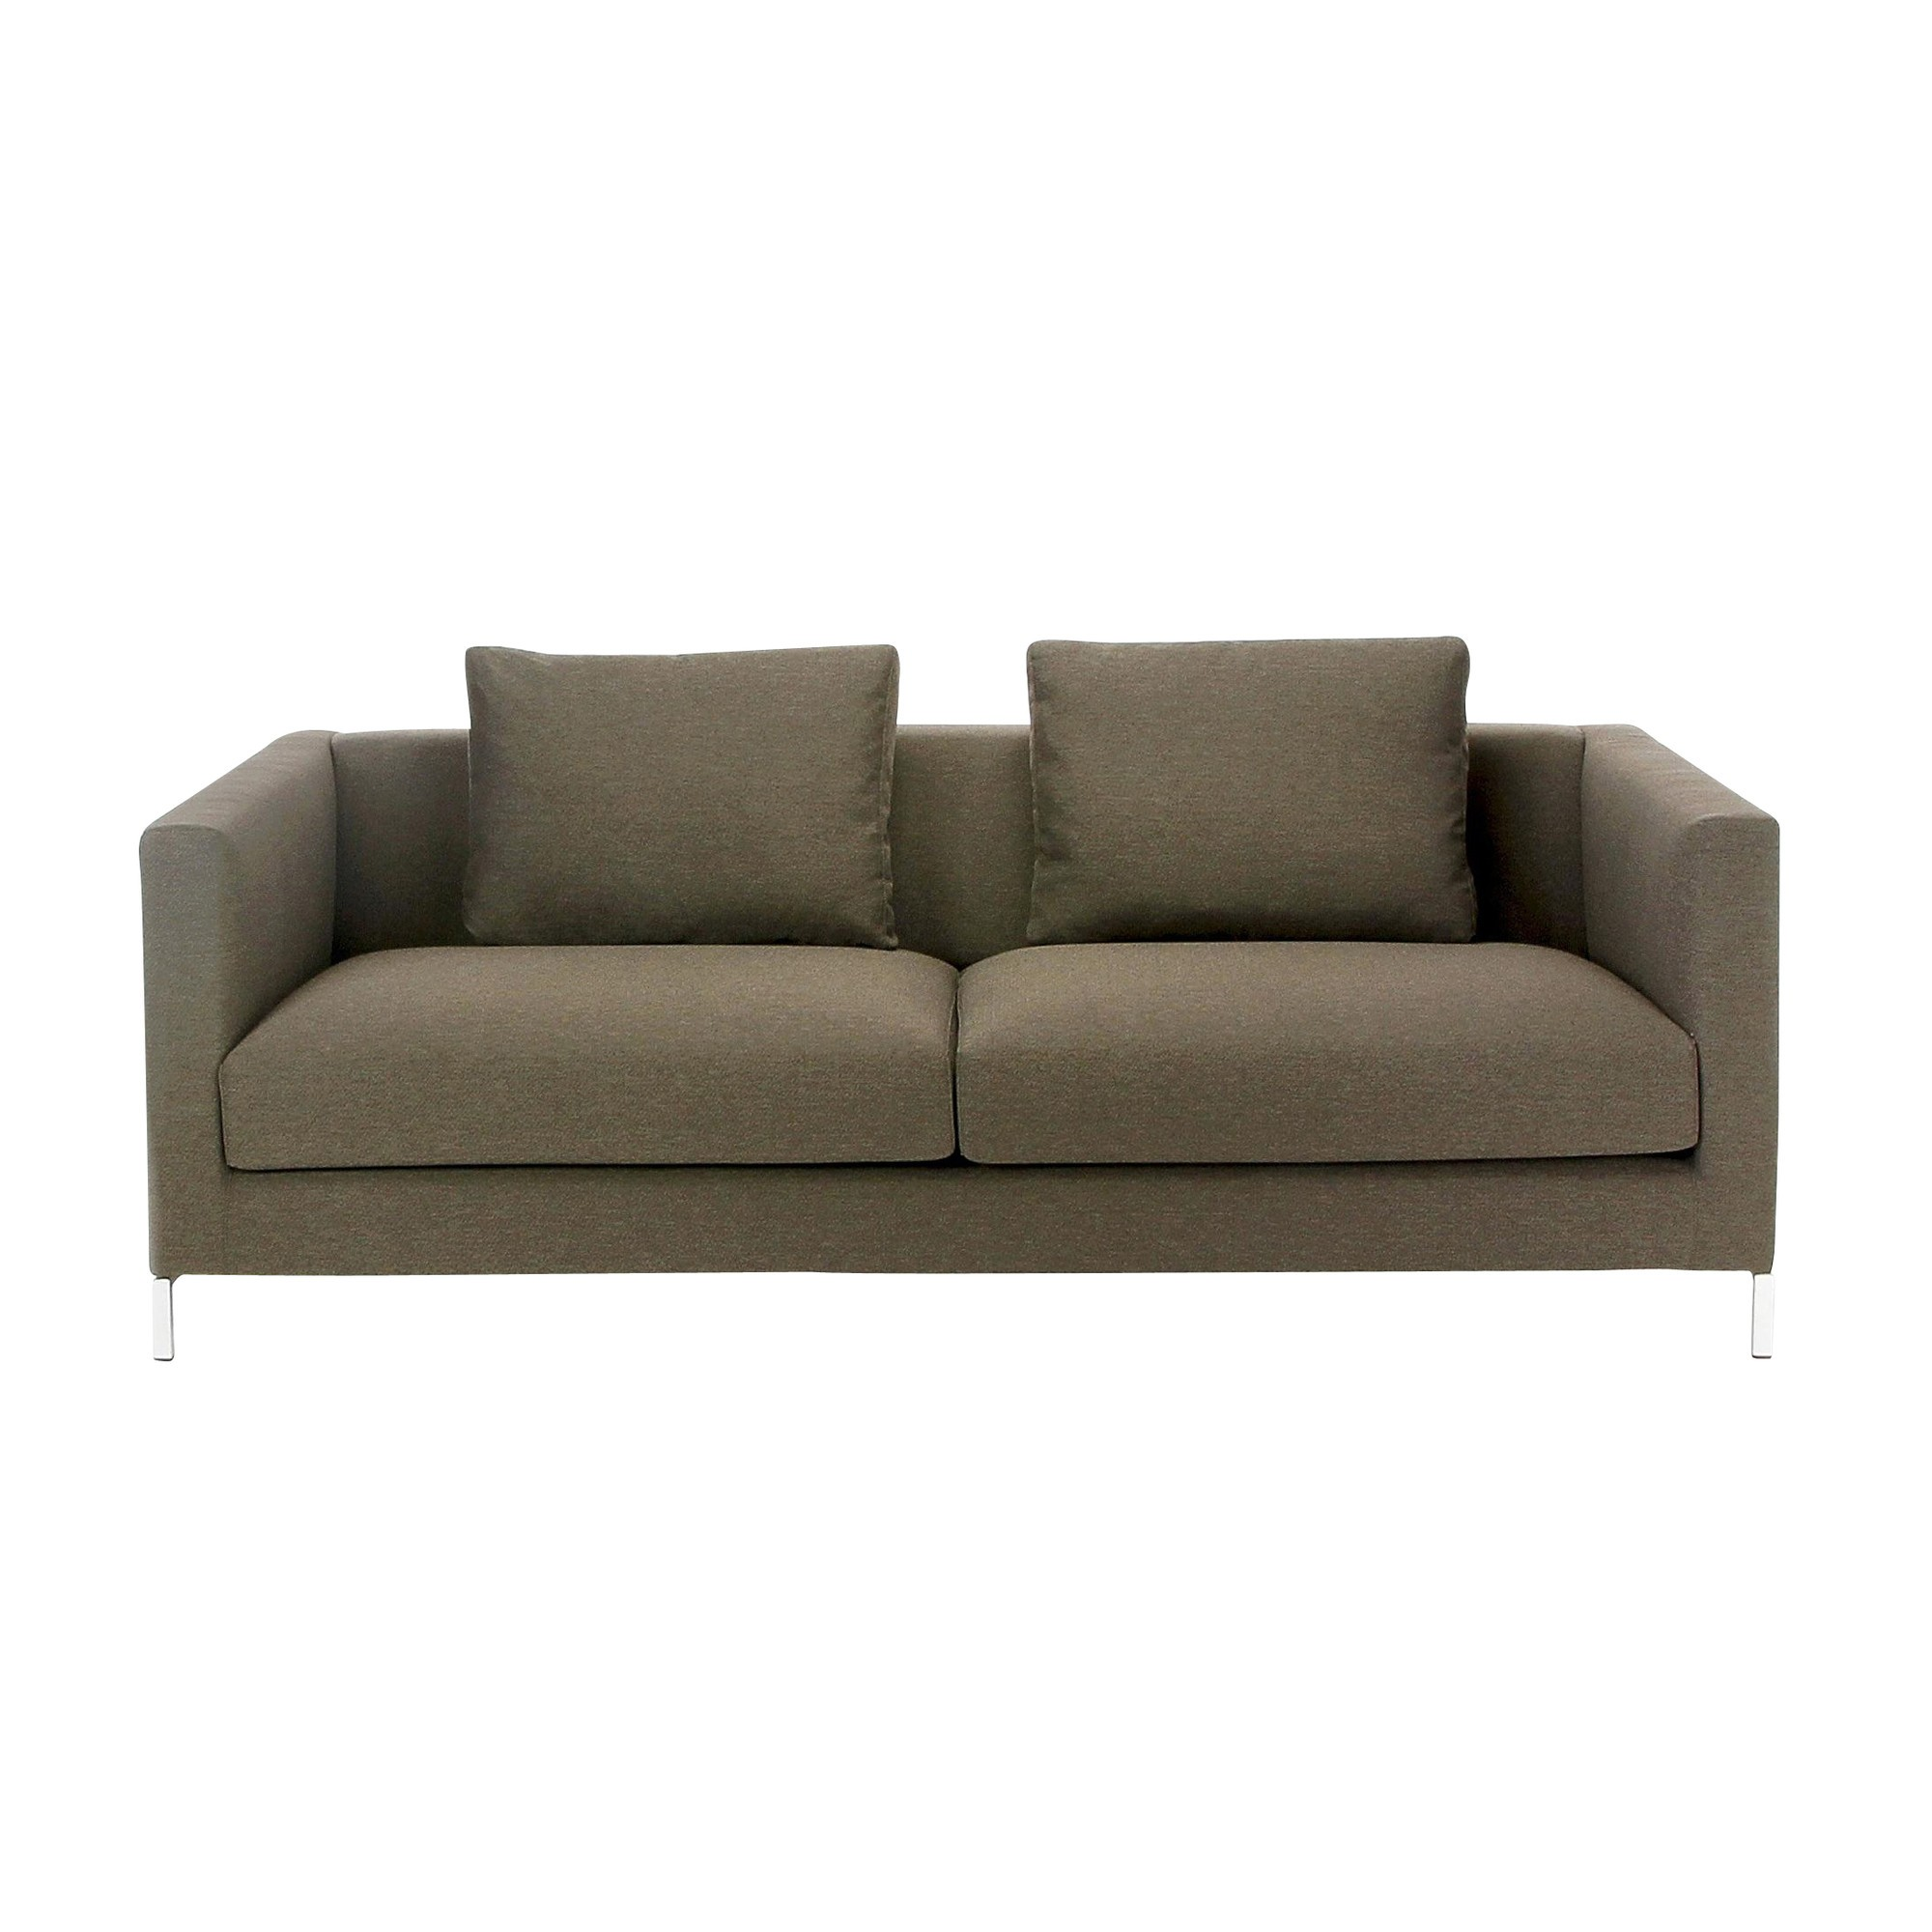 Adwood Cube Sofa 3 Seater Couch 202x92cm